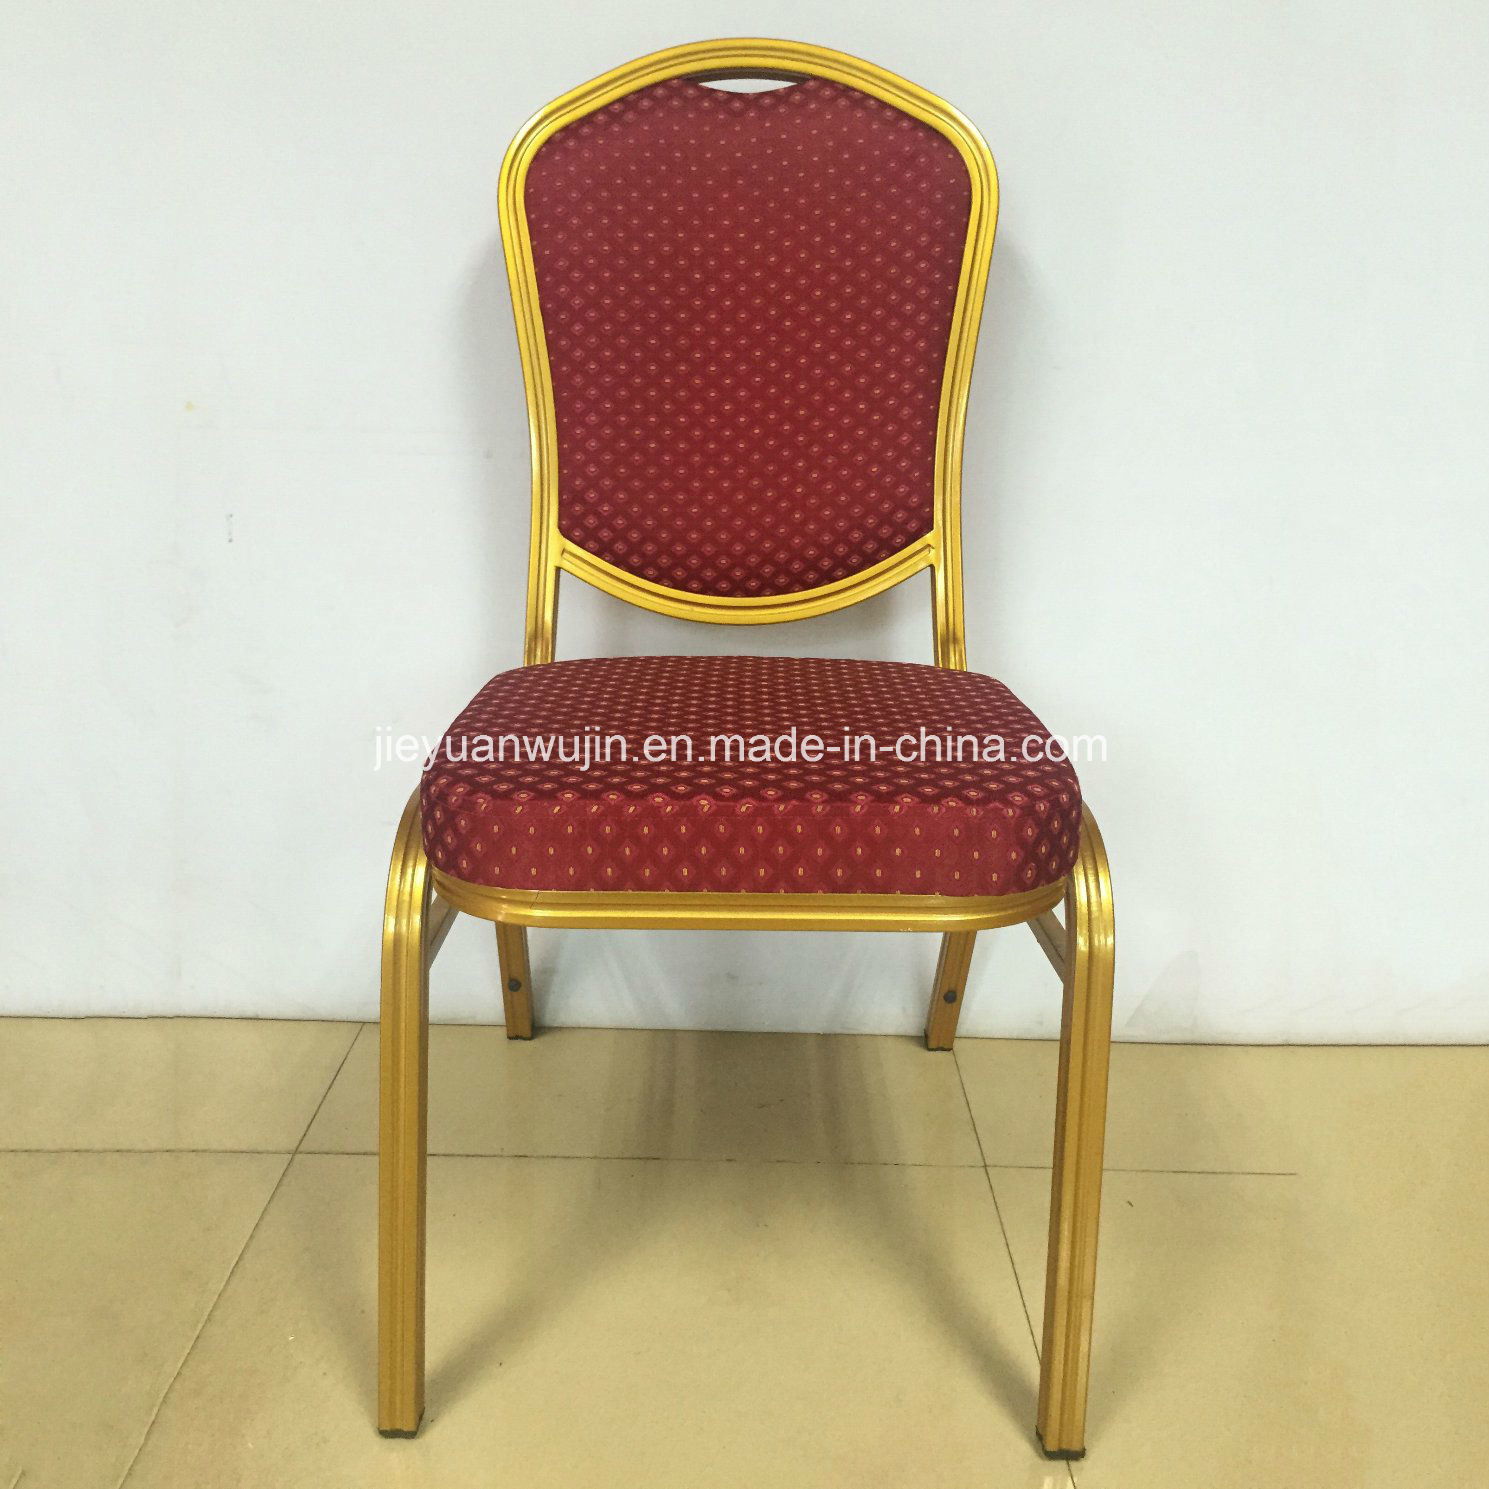 China Banquet Chairs Banquet Table Hotel Restaurant Chairs